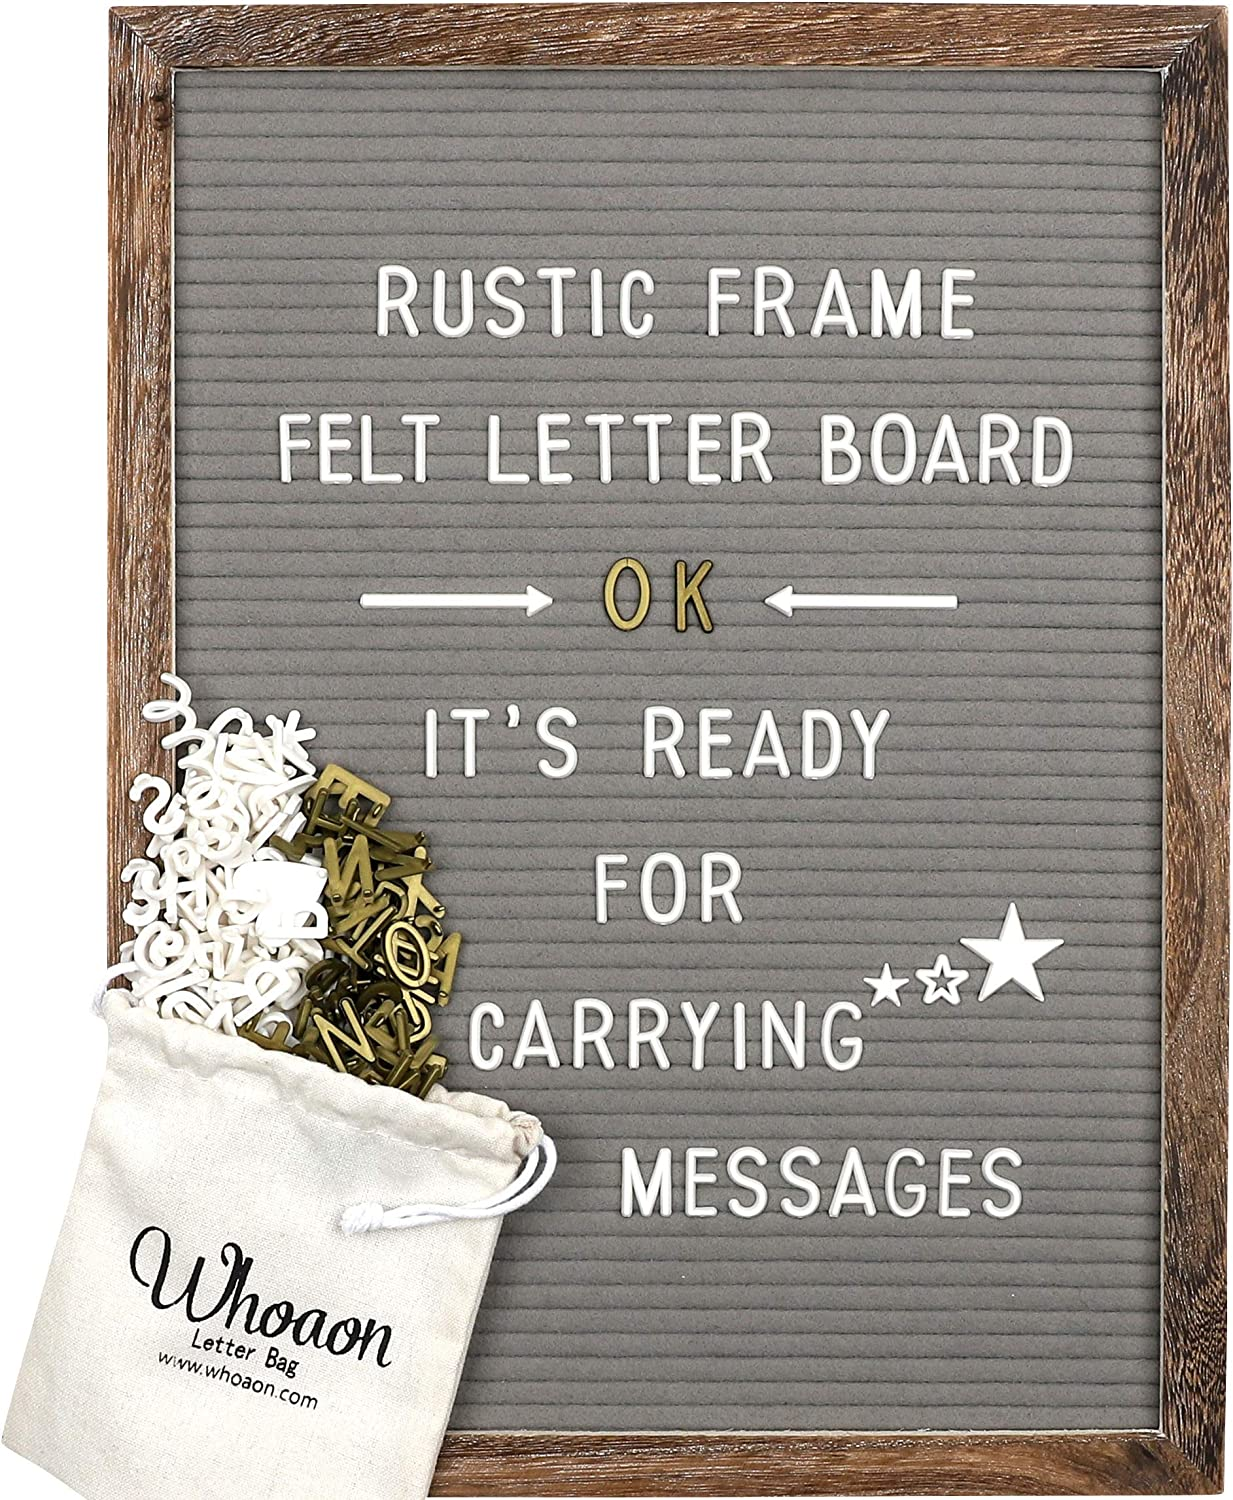 Rustic Wood Frame Gray Felt Letter Board 12x16 inch. Precut White & Gold Letters, Script Cursive Words, Wood Stand. Wall & Tabletop Board Sign for Farmhouse Home Decor. Grey Felt Message Board